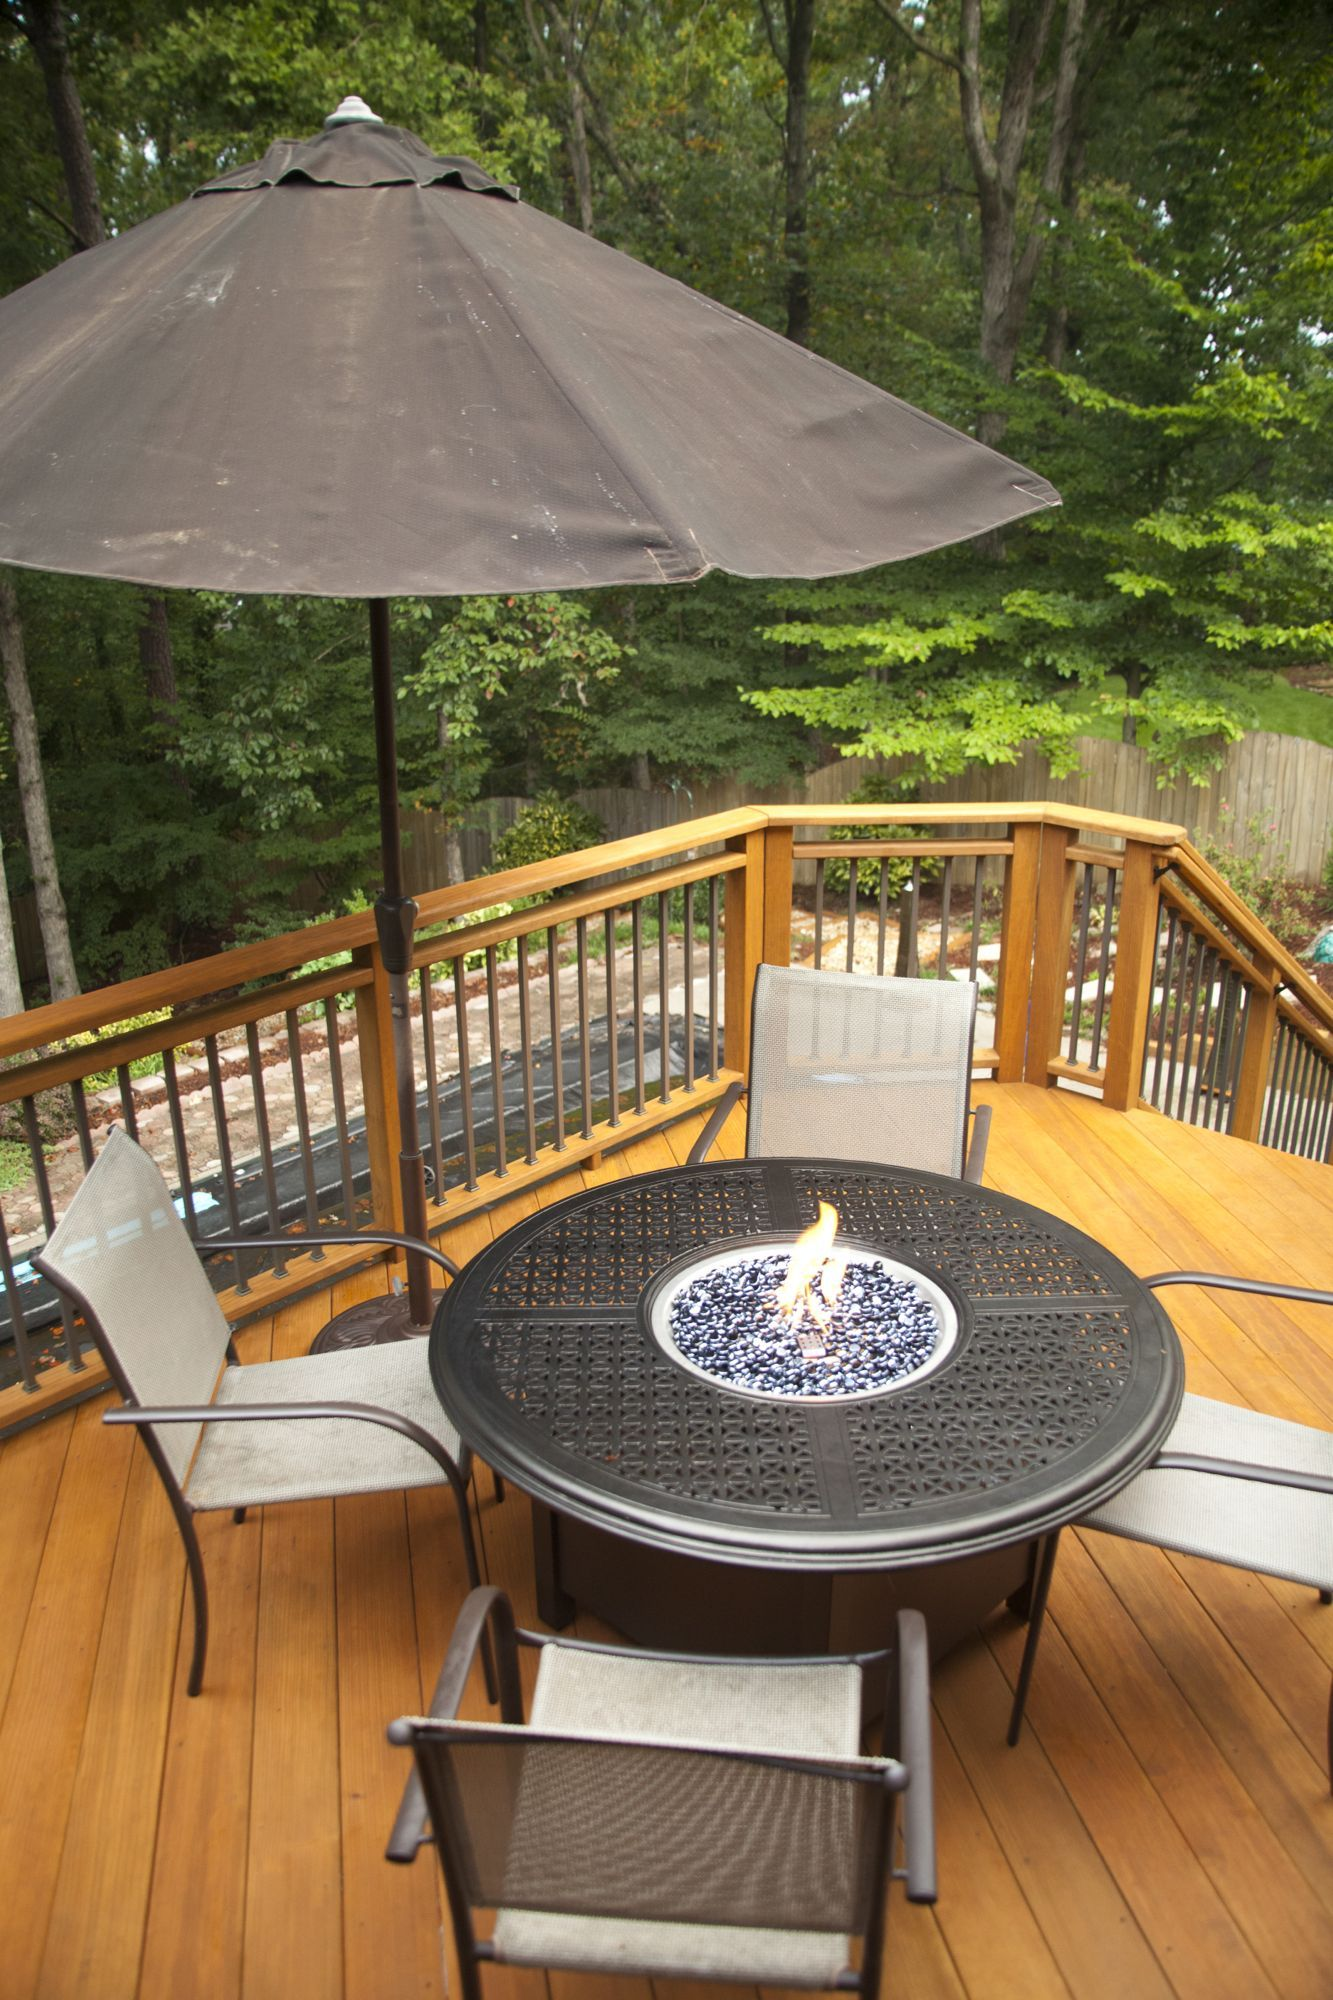 Roswell GA Project Higher View Of Patio Furniture Porches - Patio furniture roswell ga